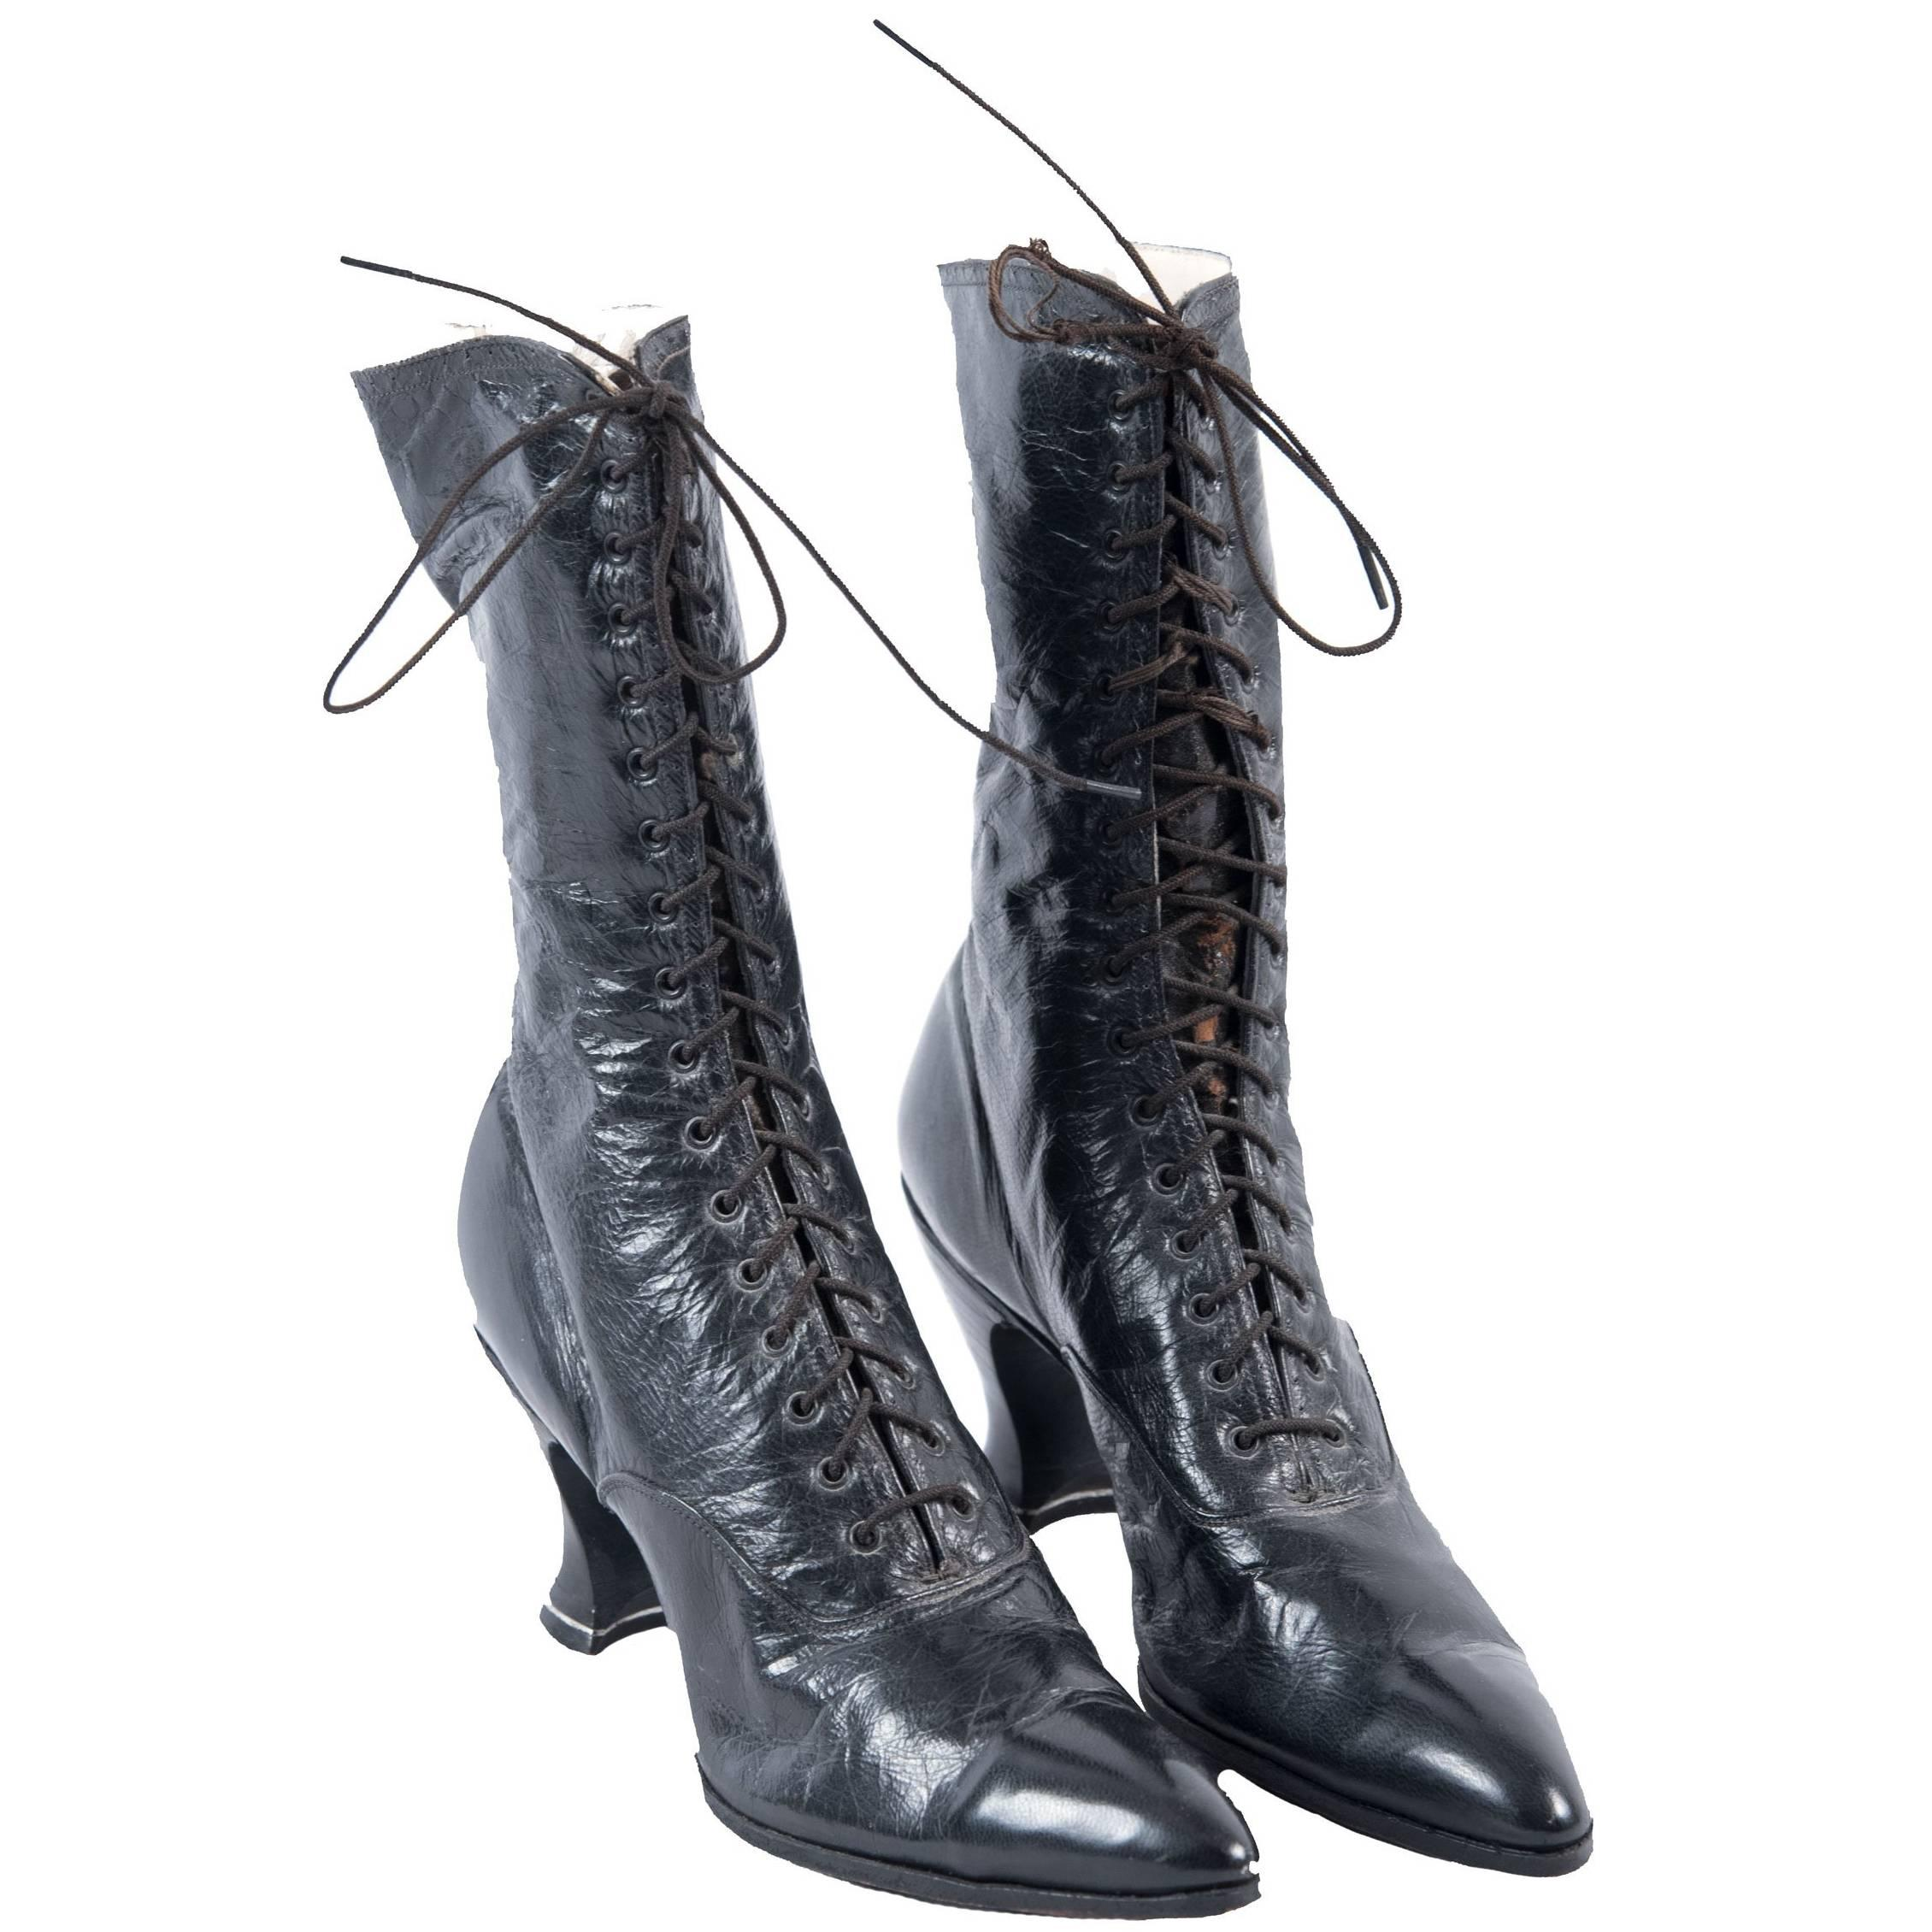 Pair of Women's Victorian High-Top Leather Boots